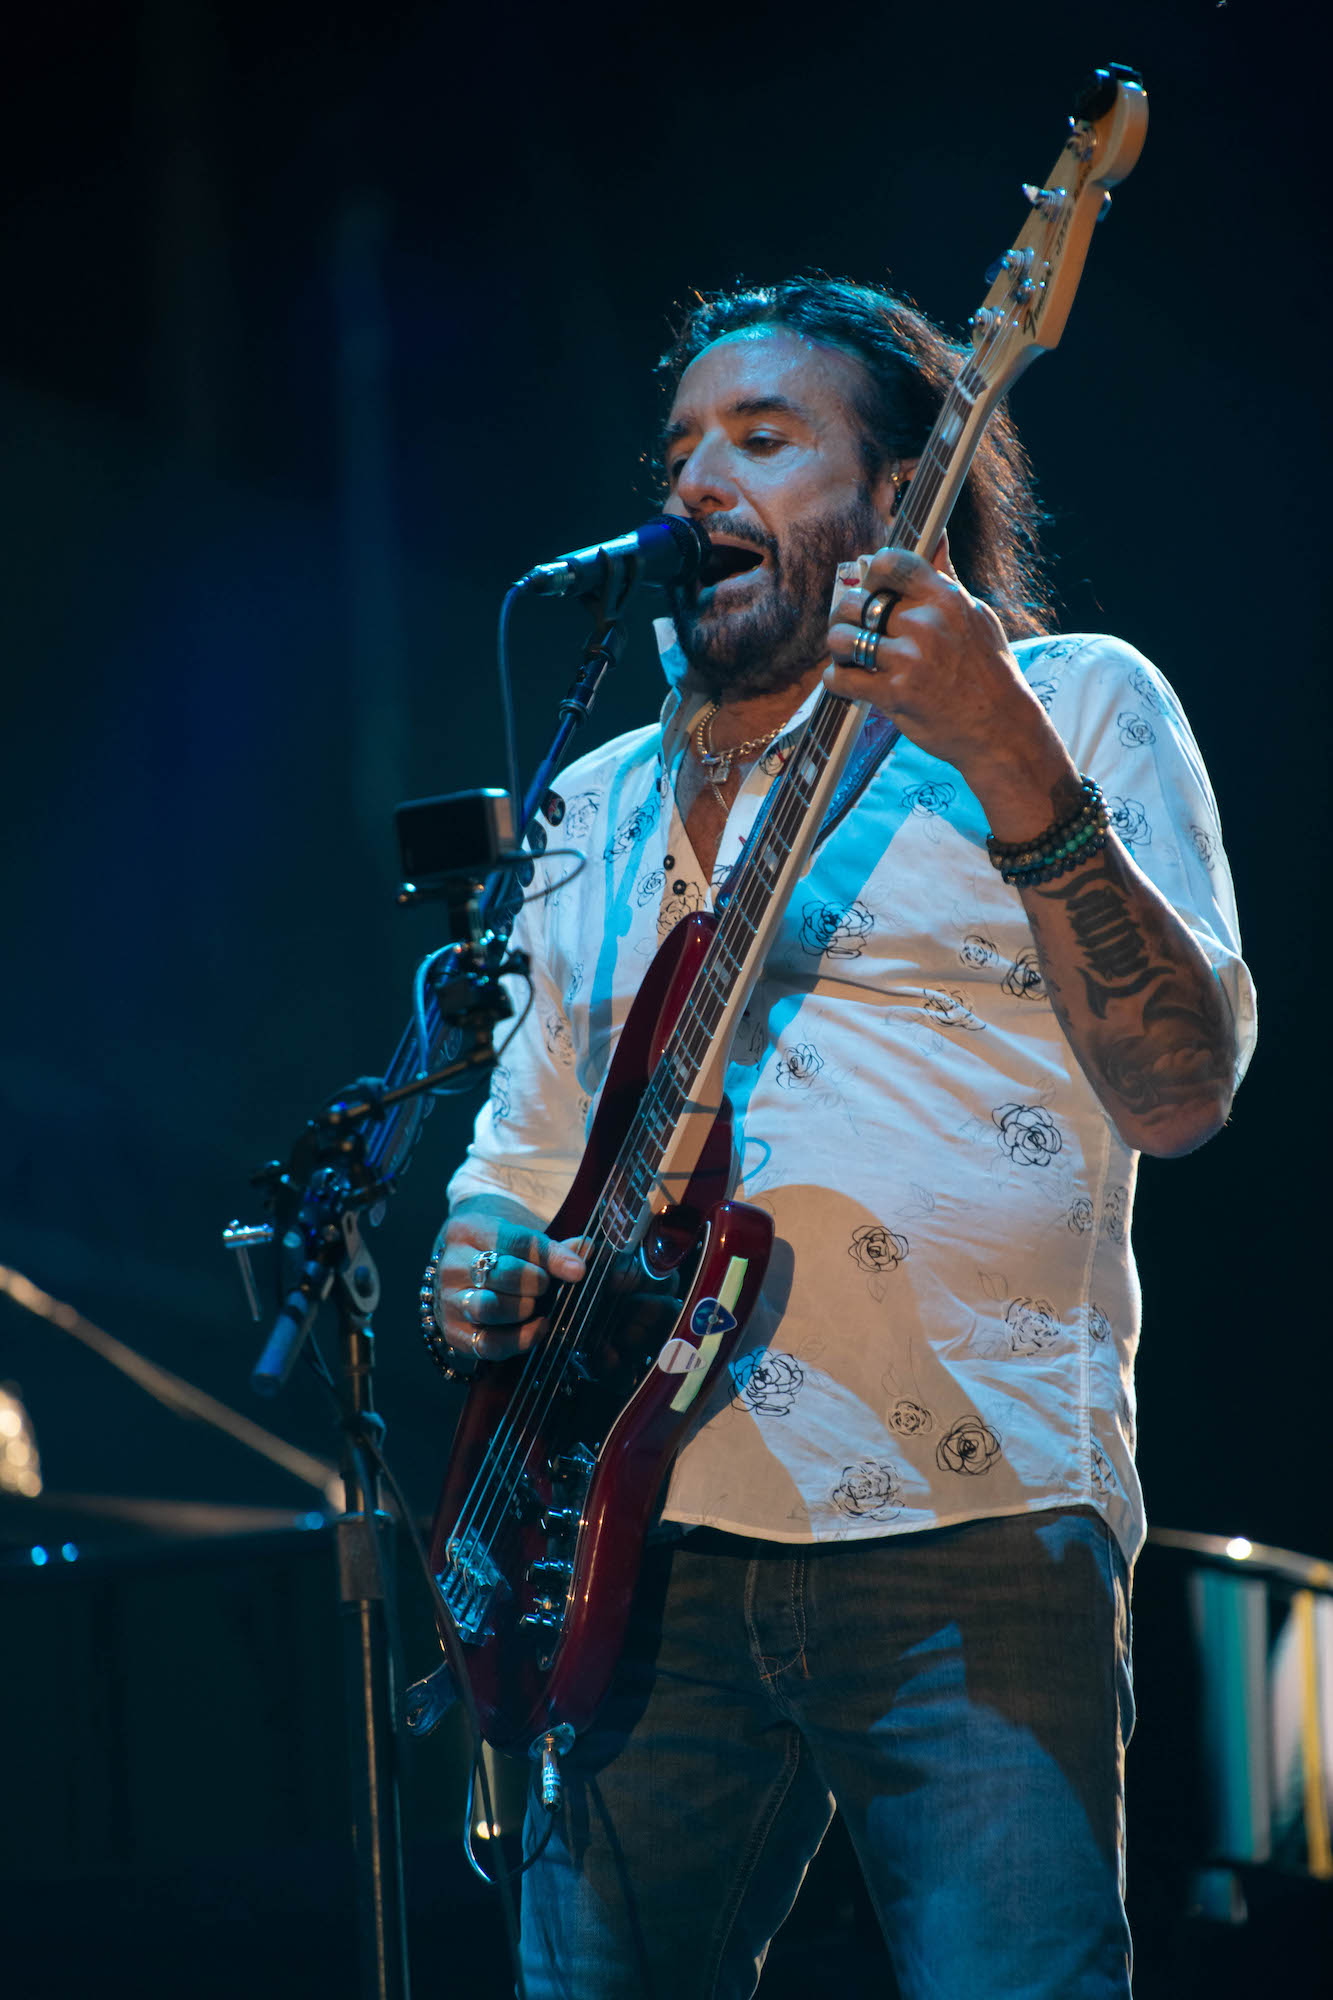 Journey Live at Lollapalooza [GALLERY] 8